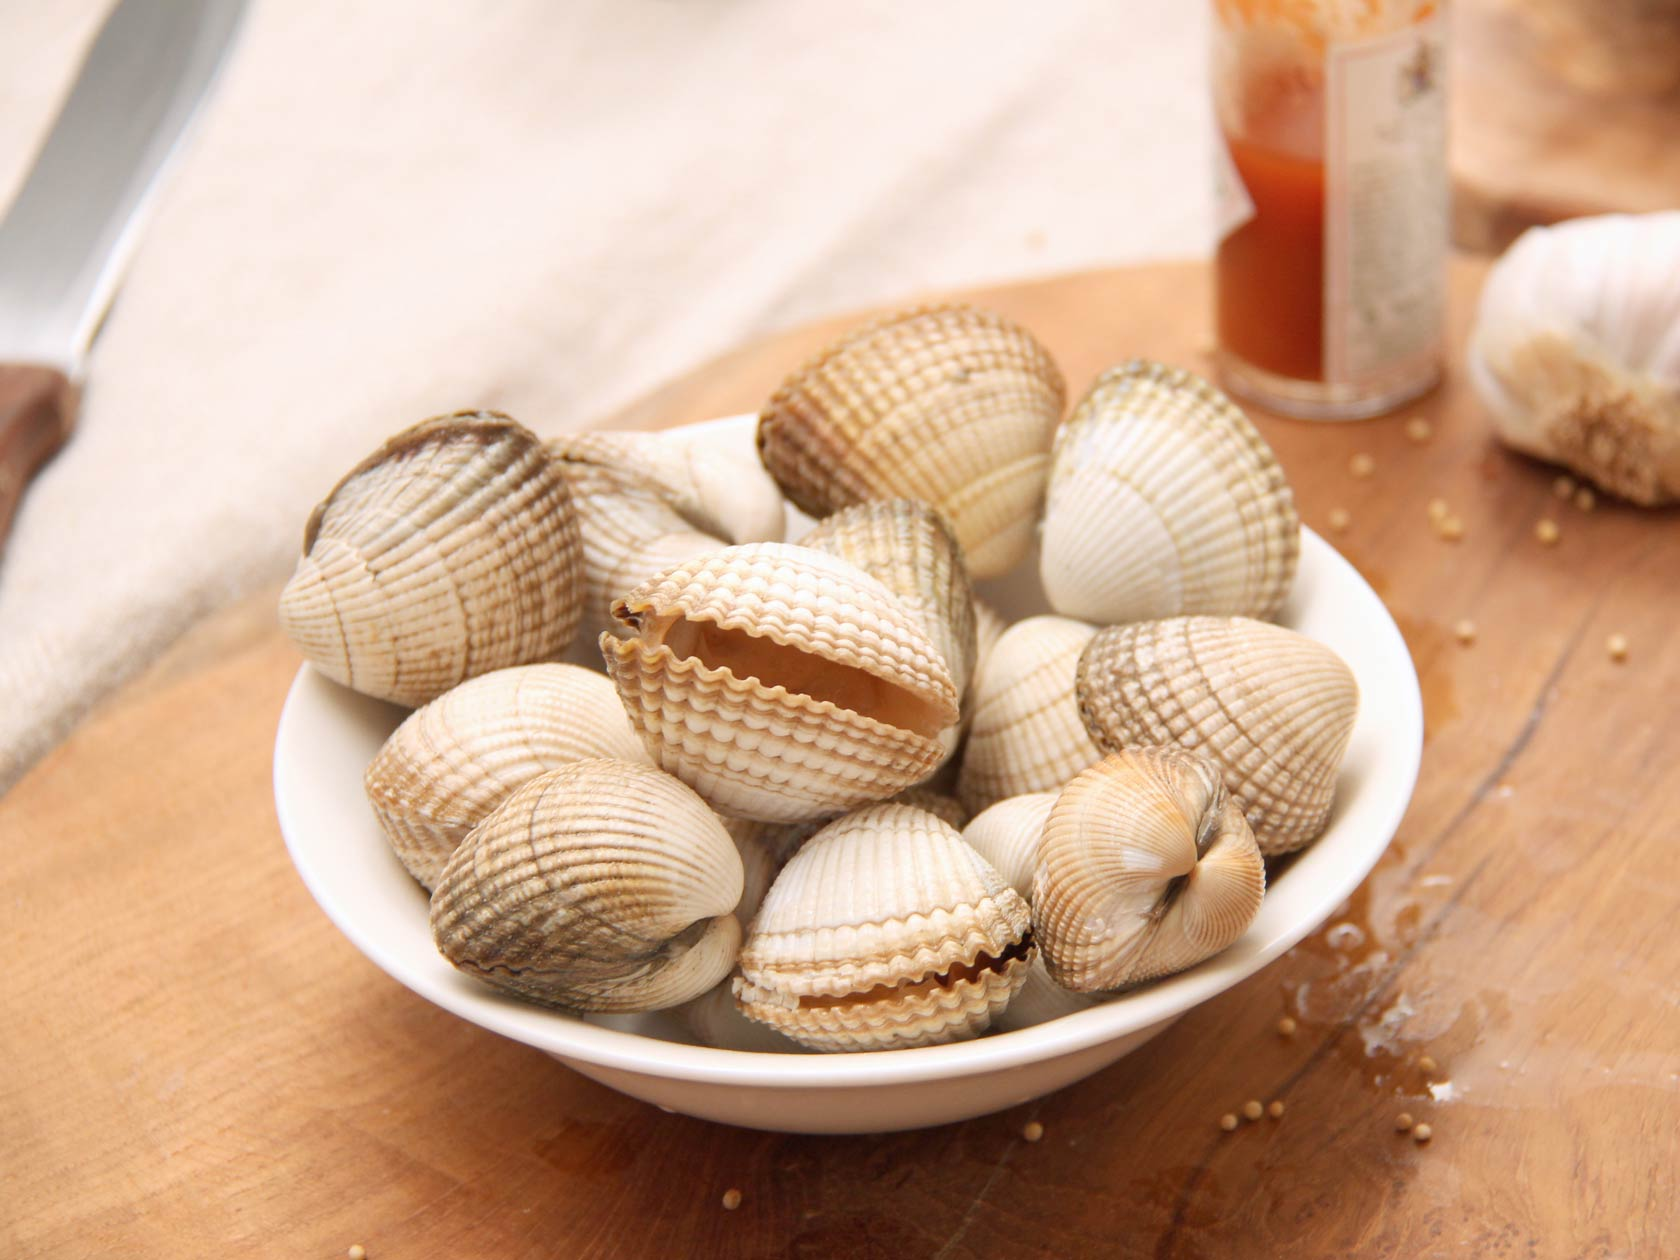 Whole Cockles